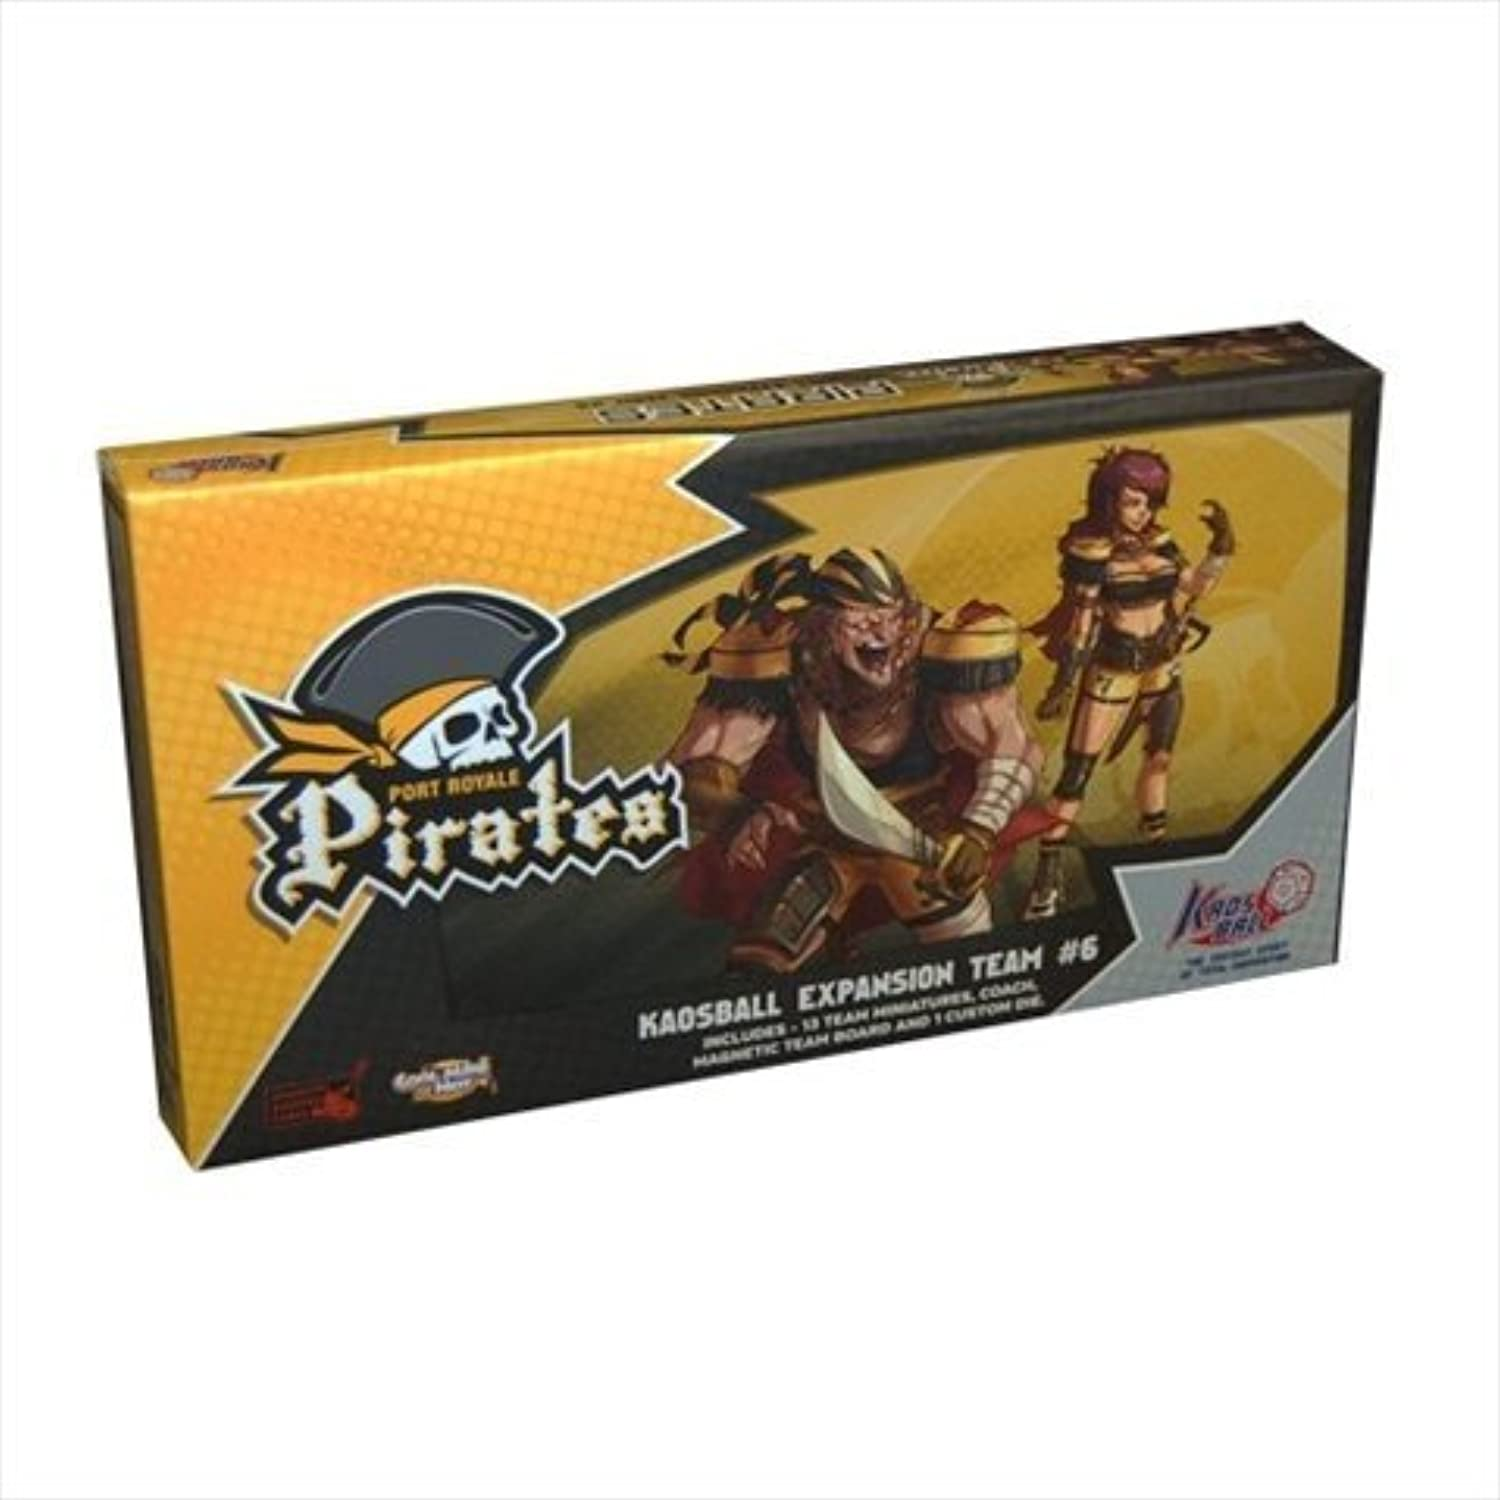 Cool Mini Or Not KB0007 Kaosball Port Royale Pirates Team by Cool Mini or Not